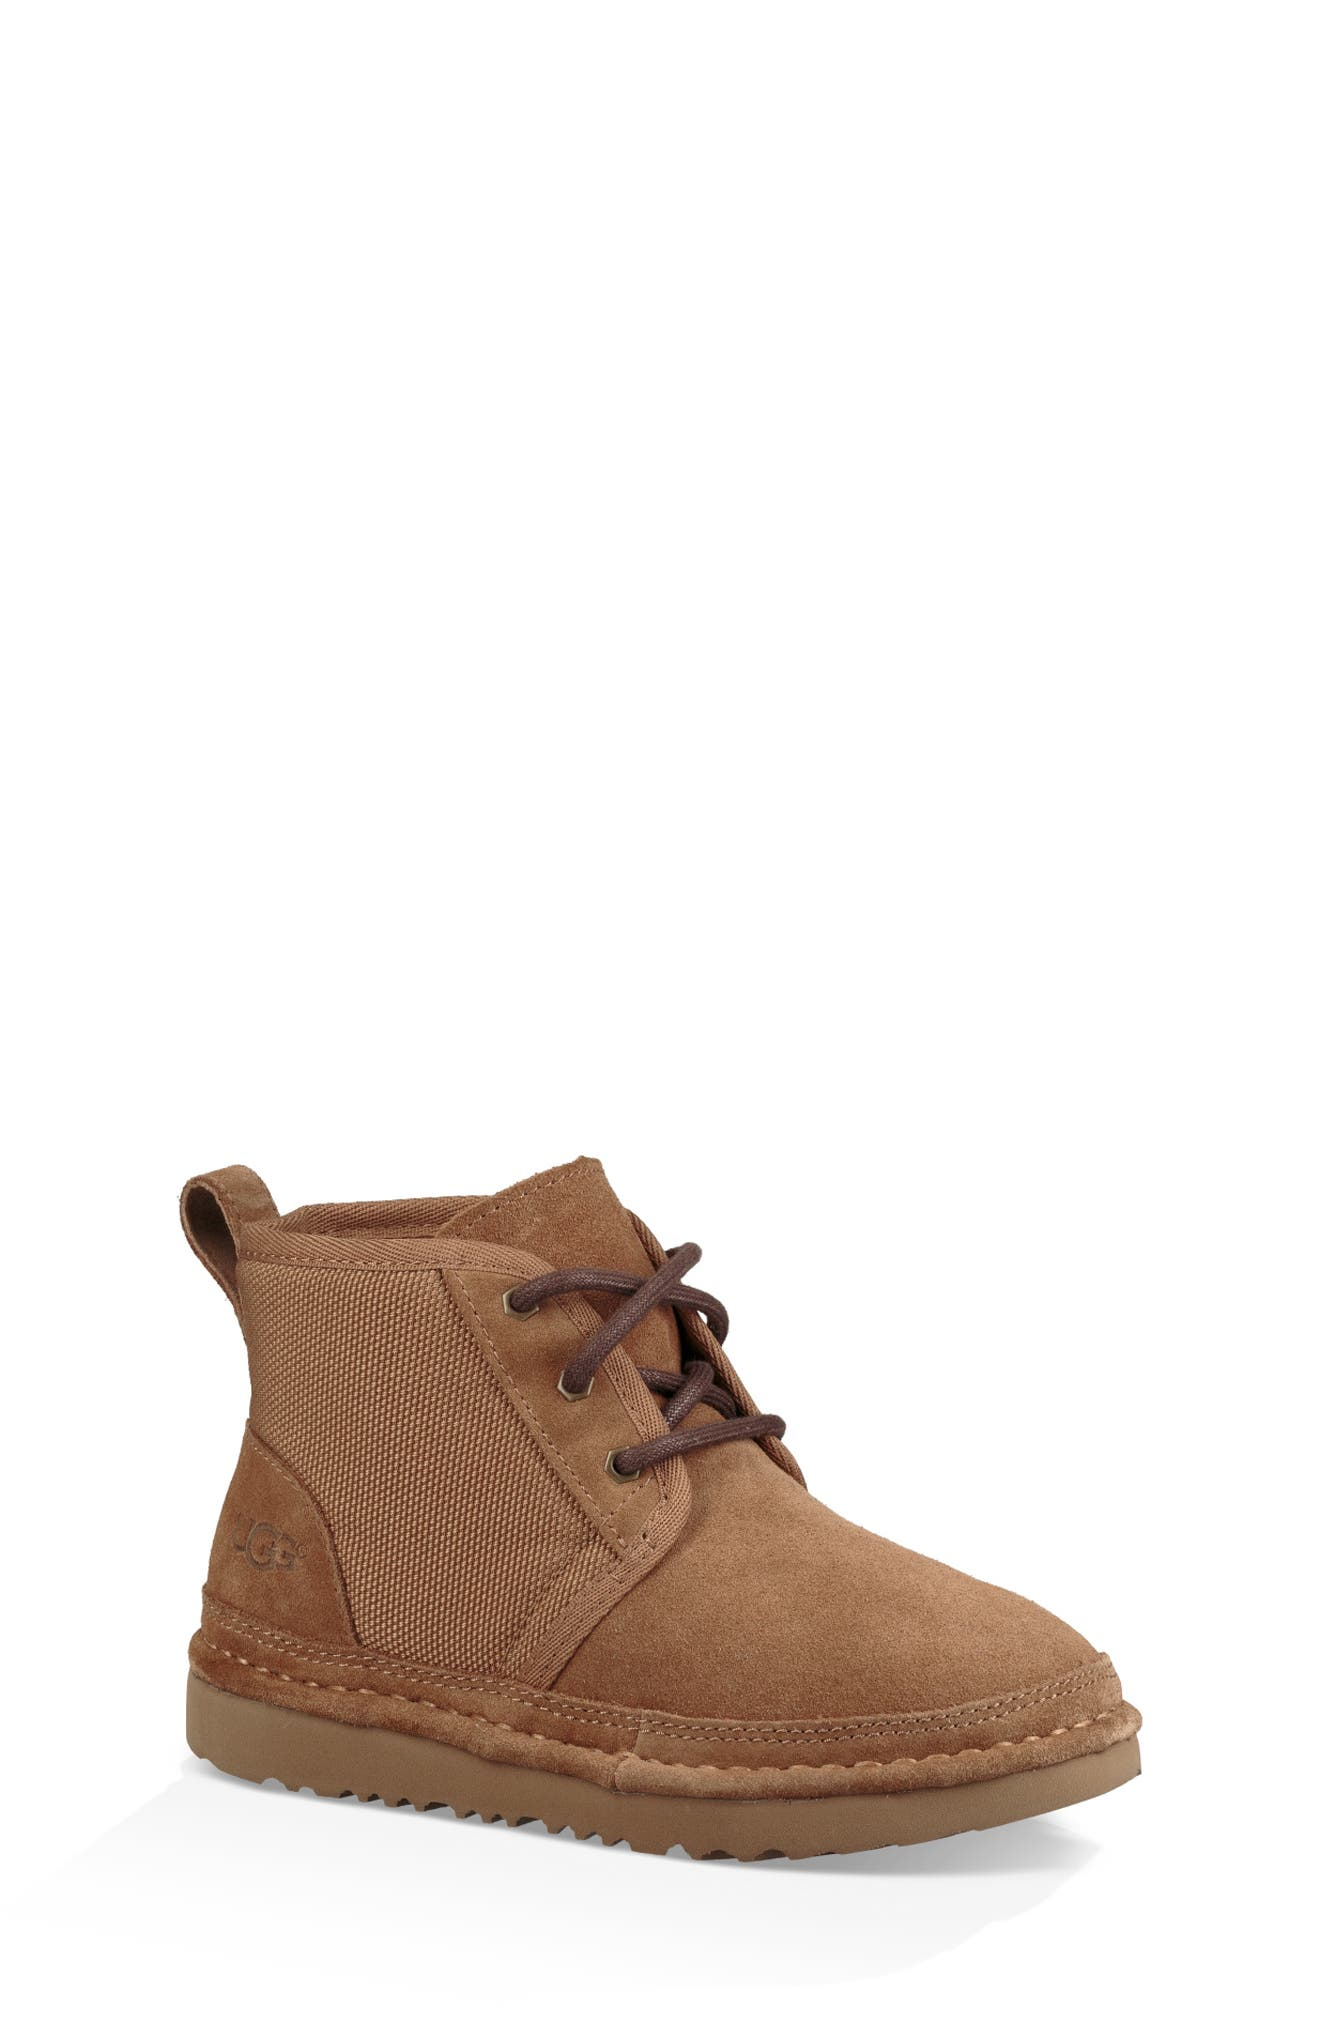 Classic Neumel II Boot,                             Main thumbnail 1, color,                             CHESTNUT